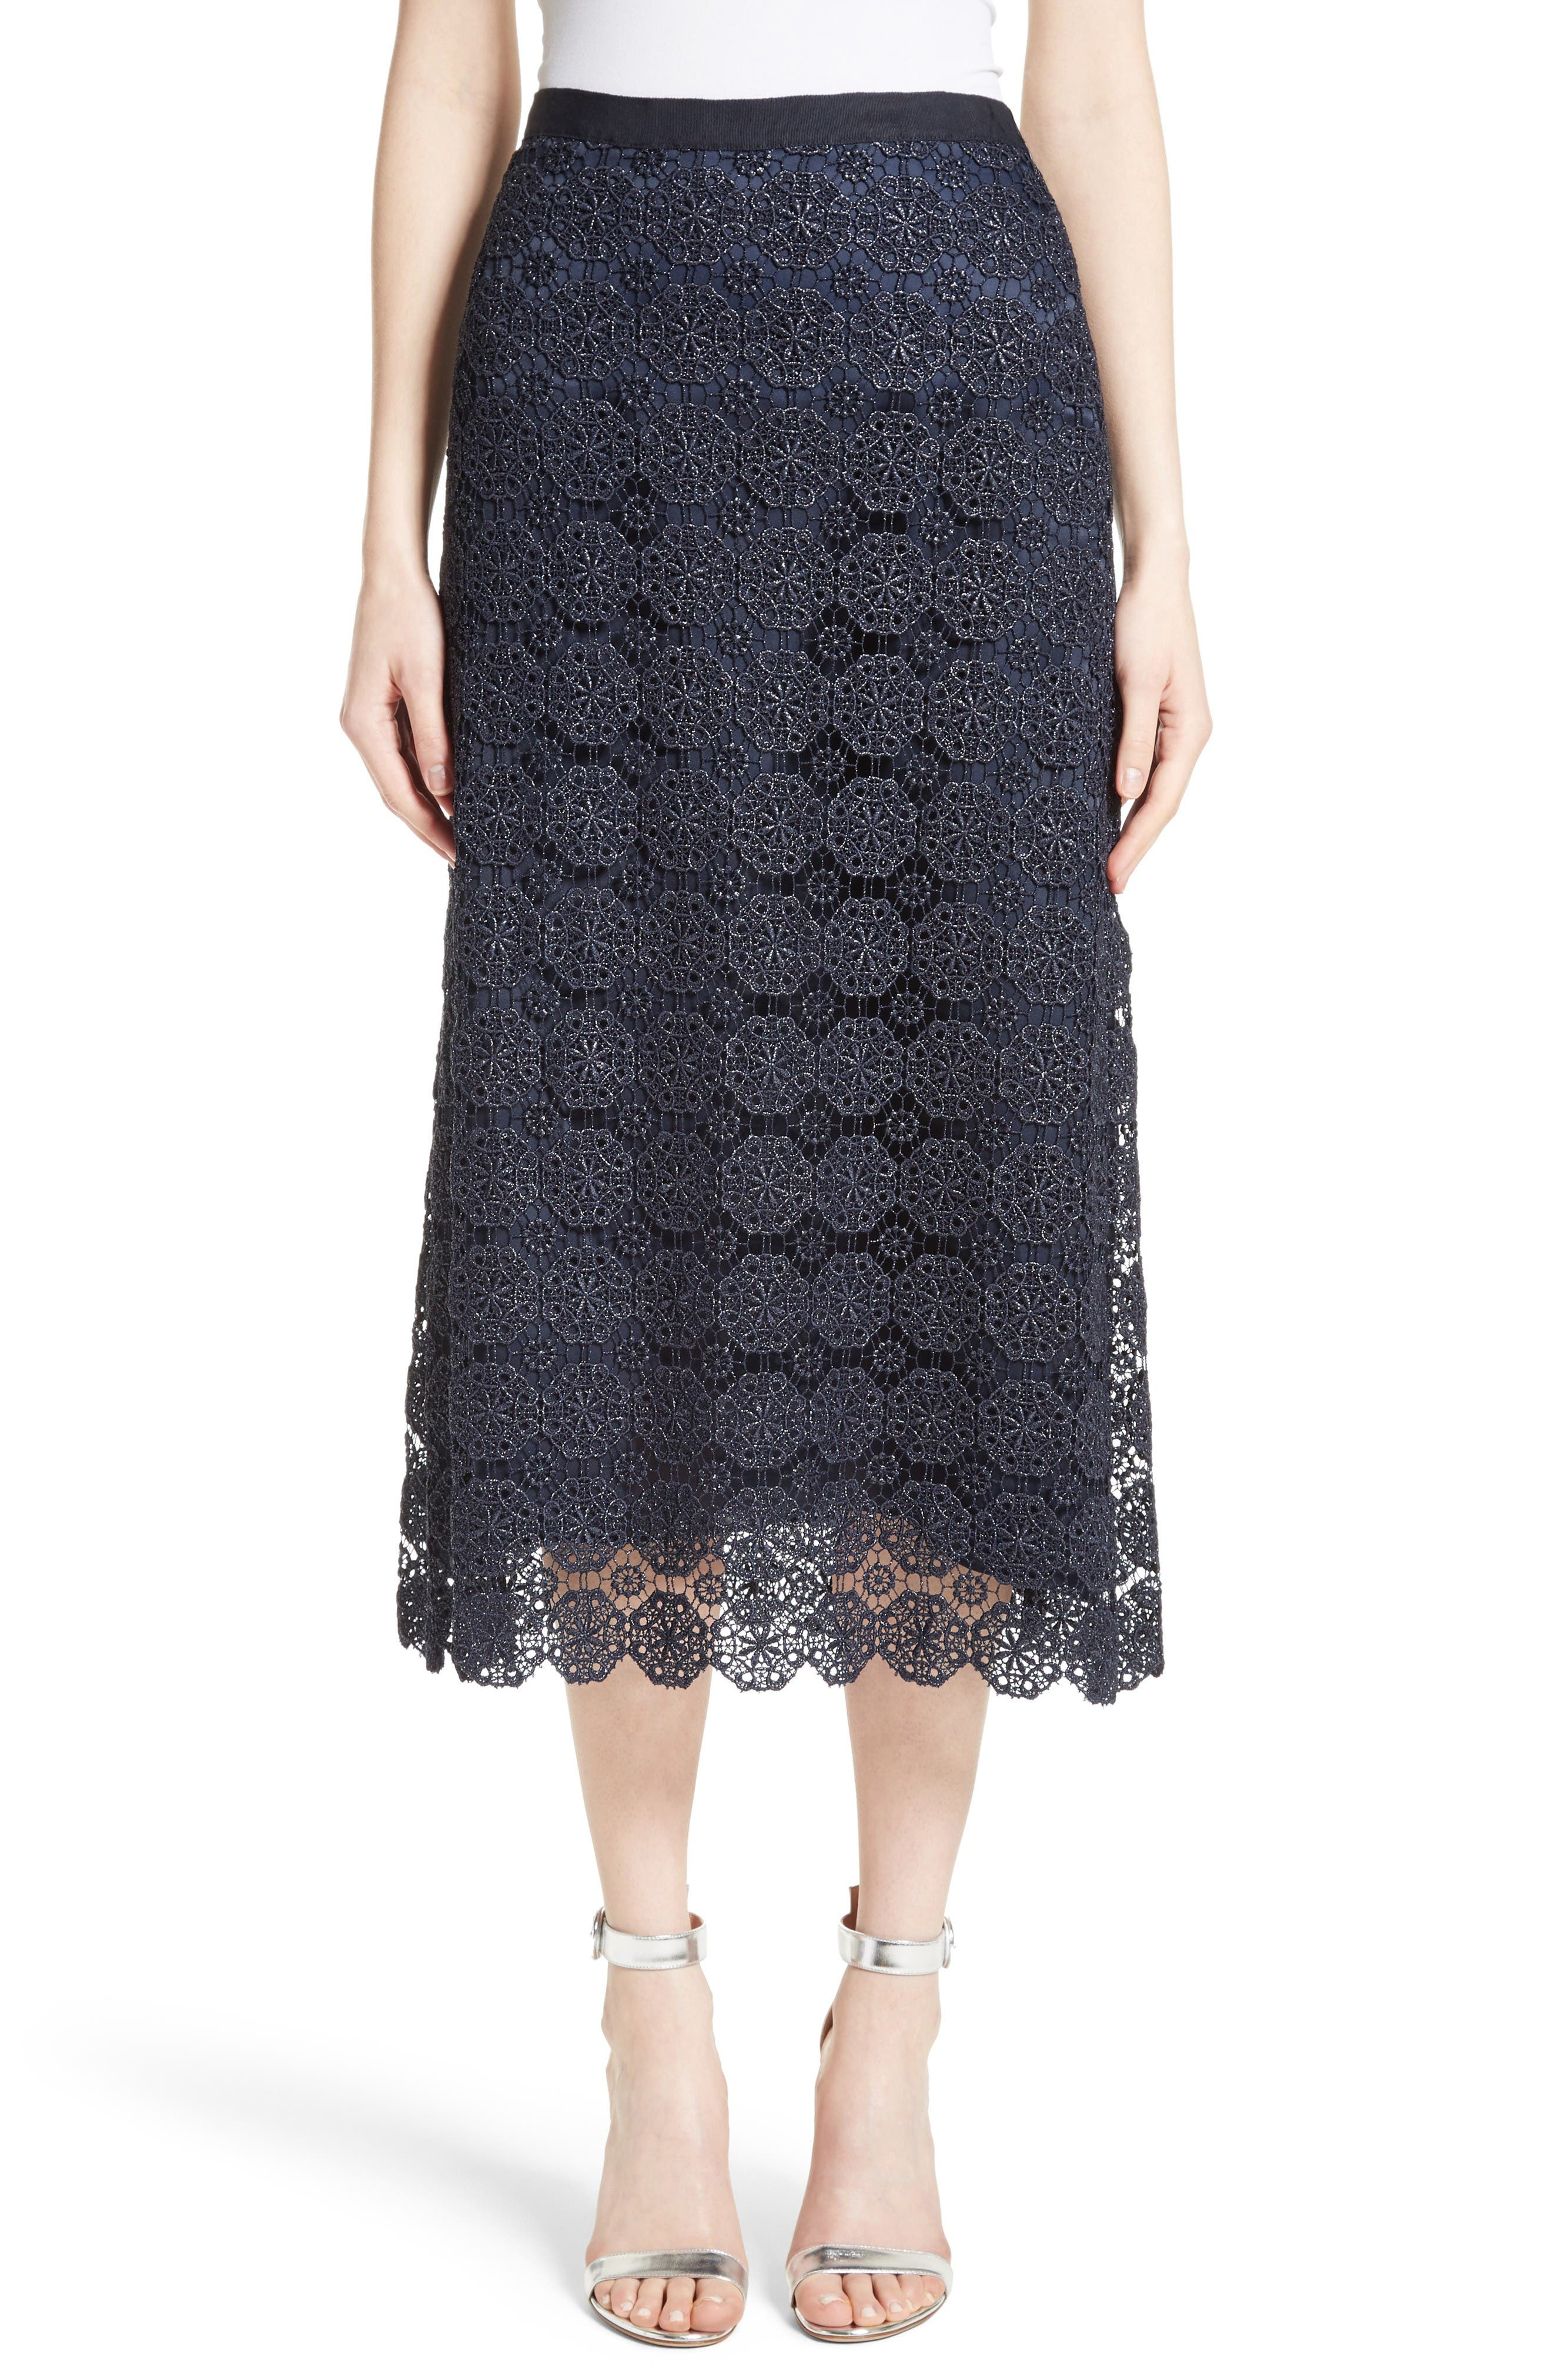 Alternate Image 1 Selected - St. John Collection Metallic Guipure Lace Skirt